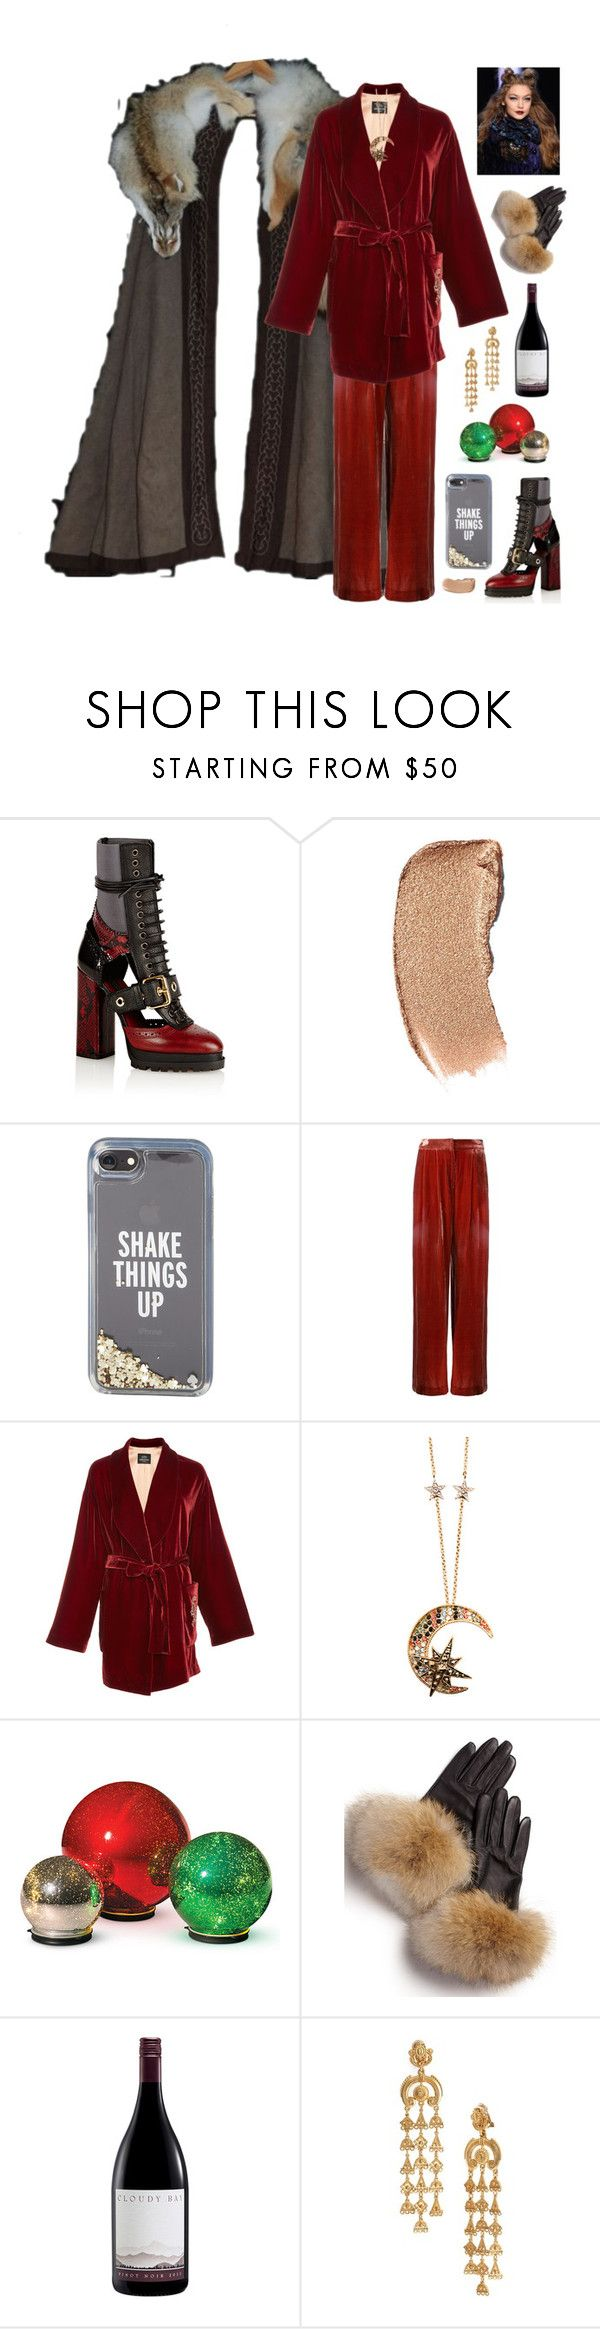 """Без названия #1234"" by marusa666 ❤ liked on Polyvore featuring Burberry, Kate Spade, Pat McGrath, Bianca Spender, Alena Akhmadullina, Roberto Cavalli, Improvements, FRR and Oscar de la Renta"